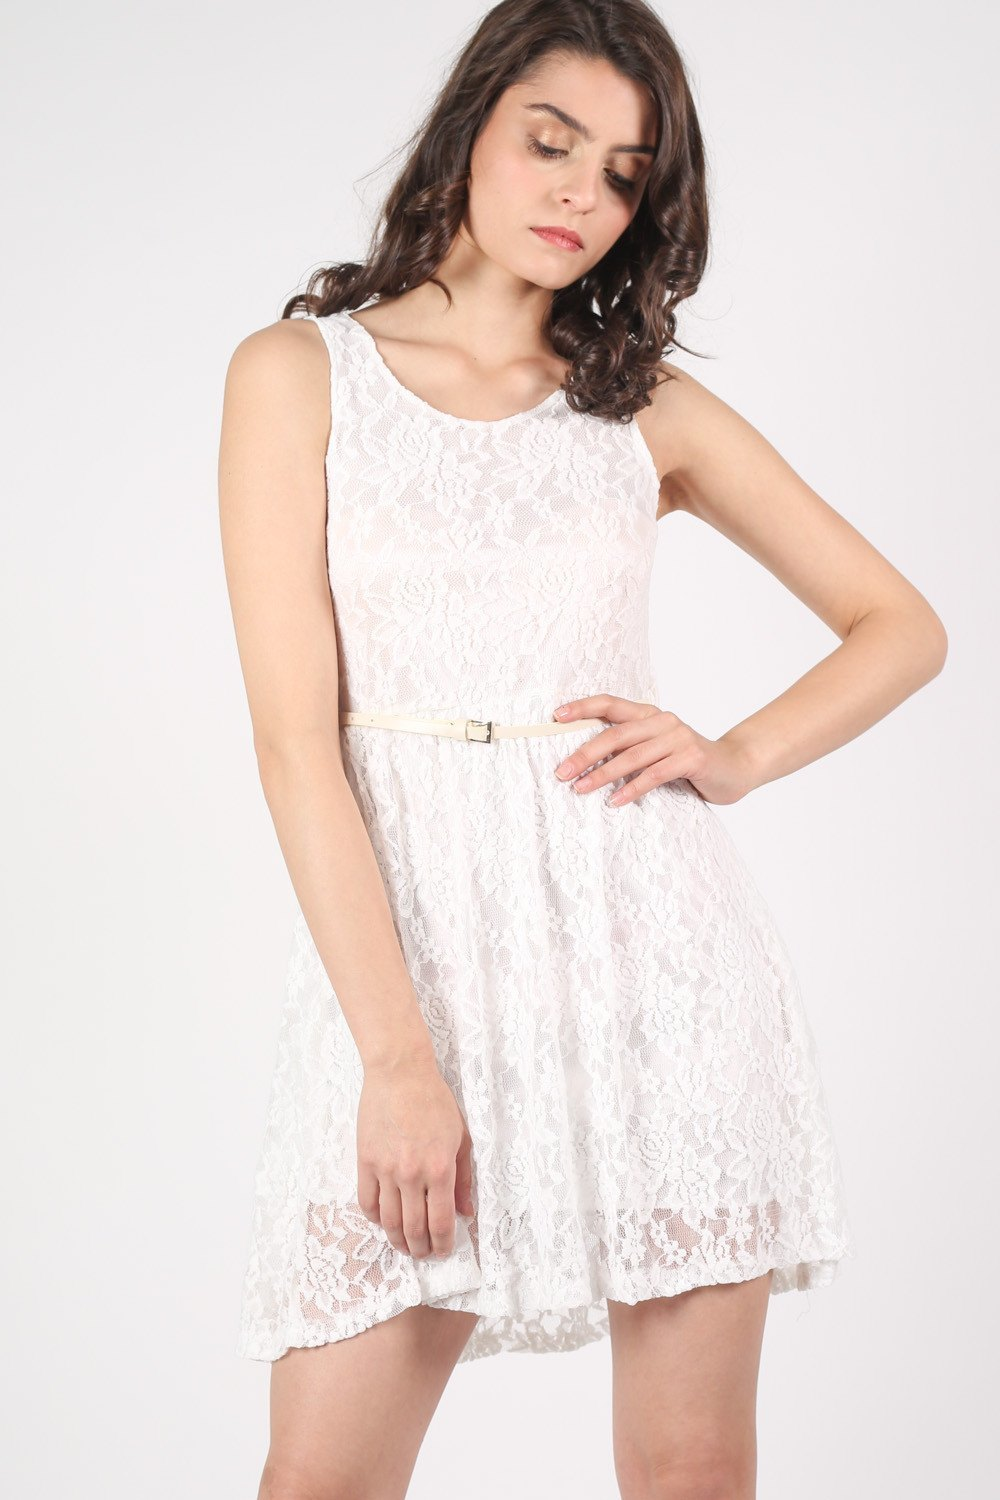 Floaty Lace Sleeveless Skater Dress With Belt in Cream MODEL FRONT